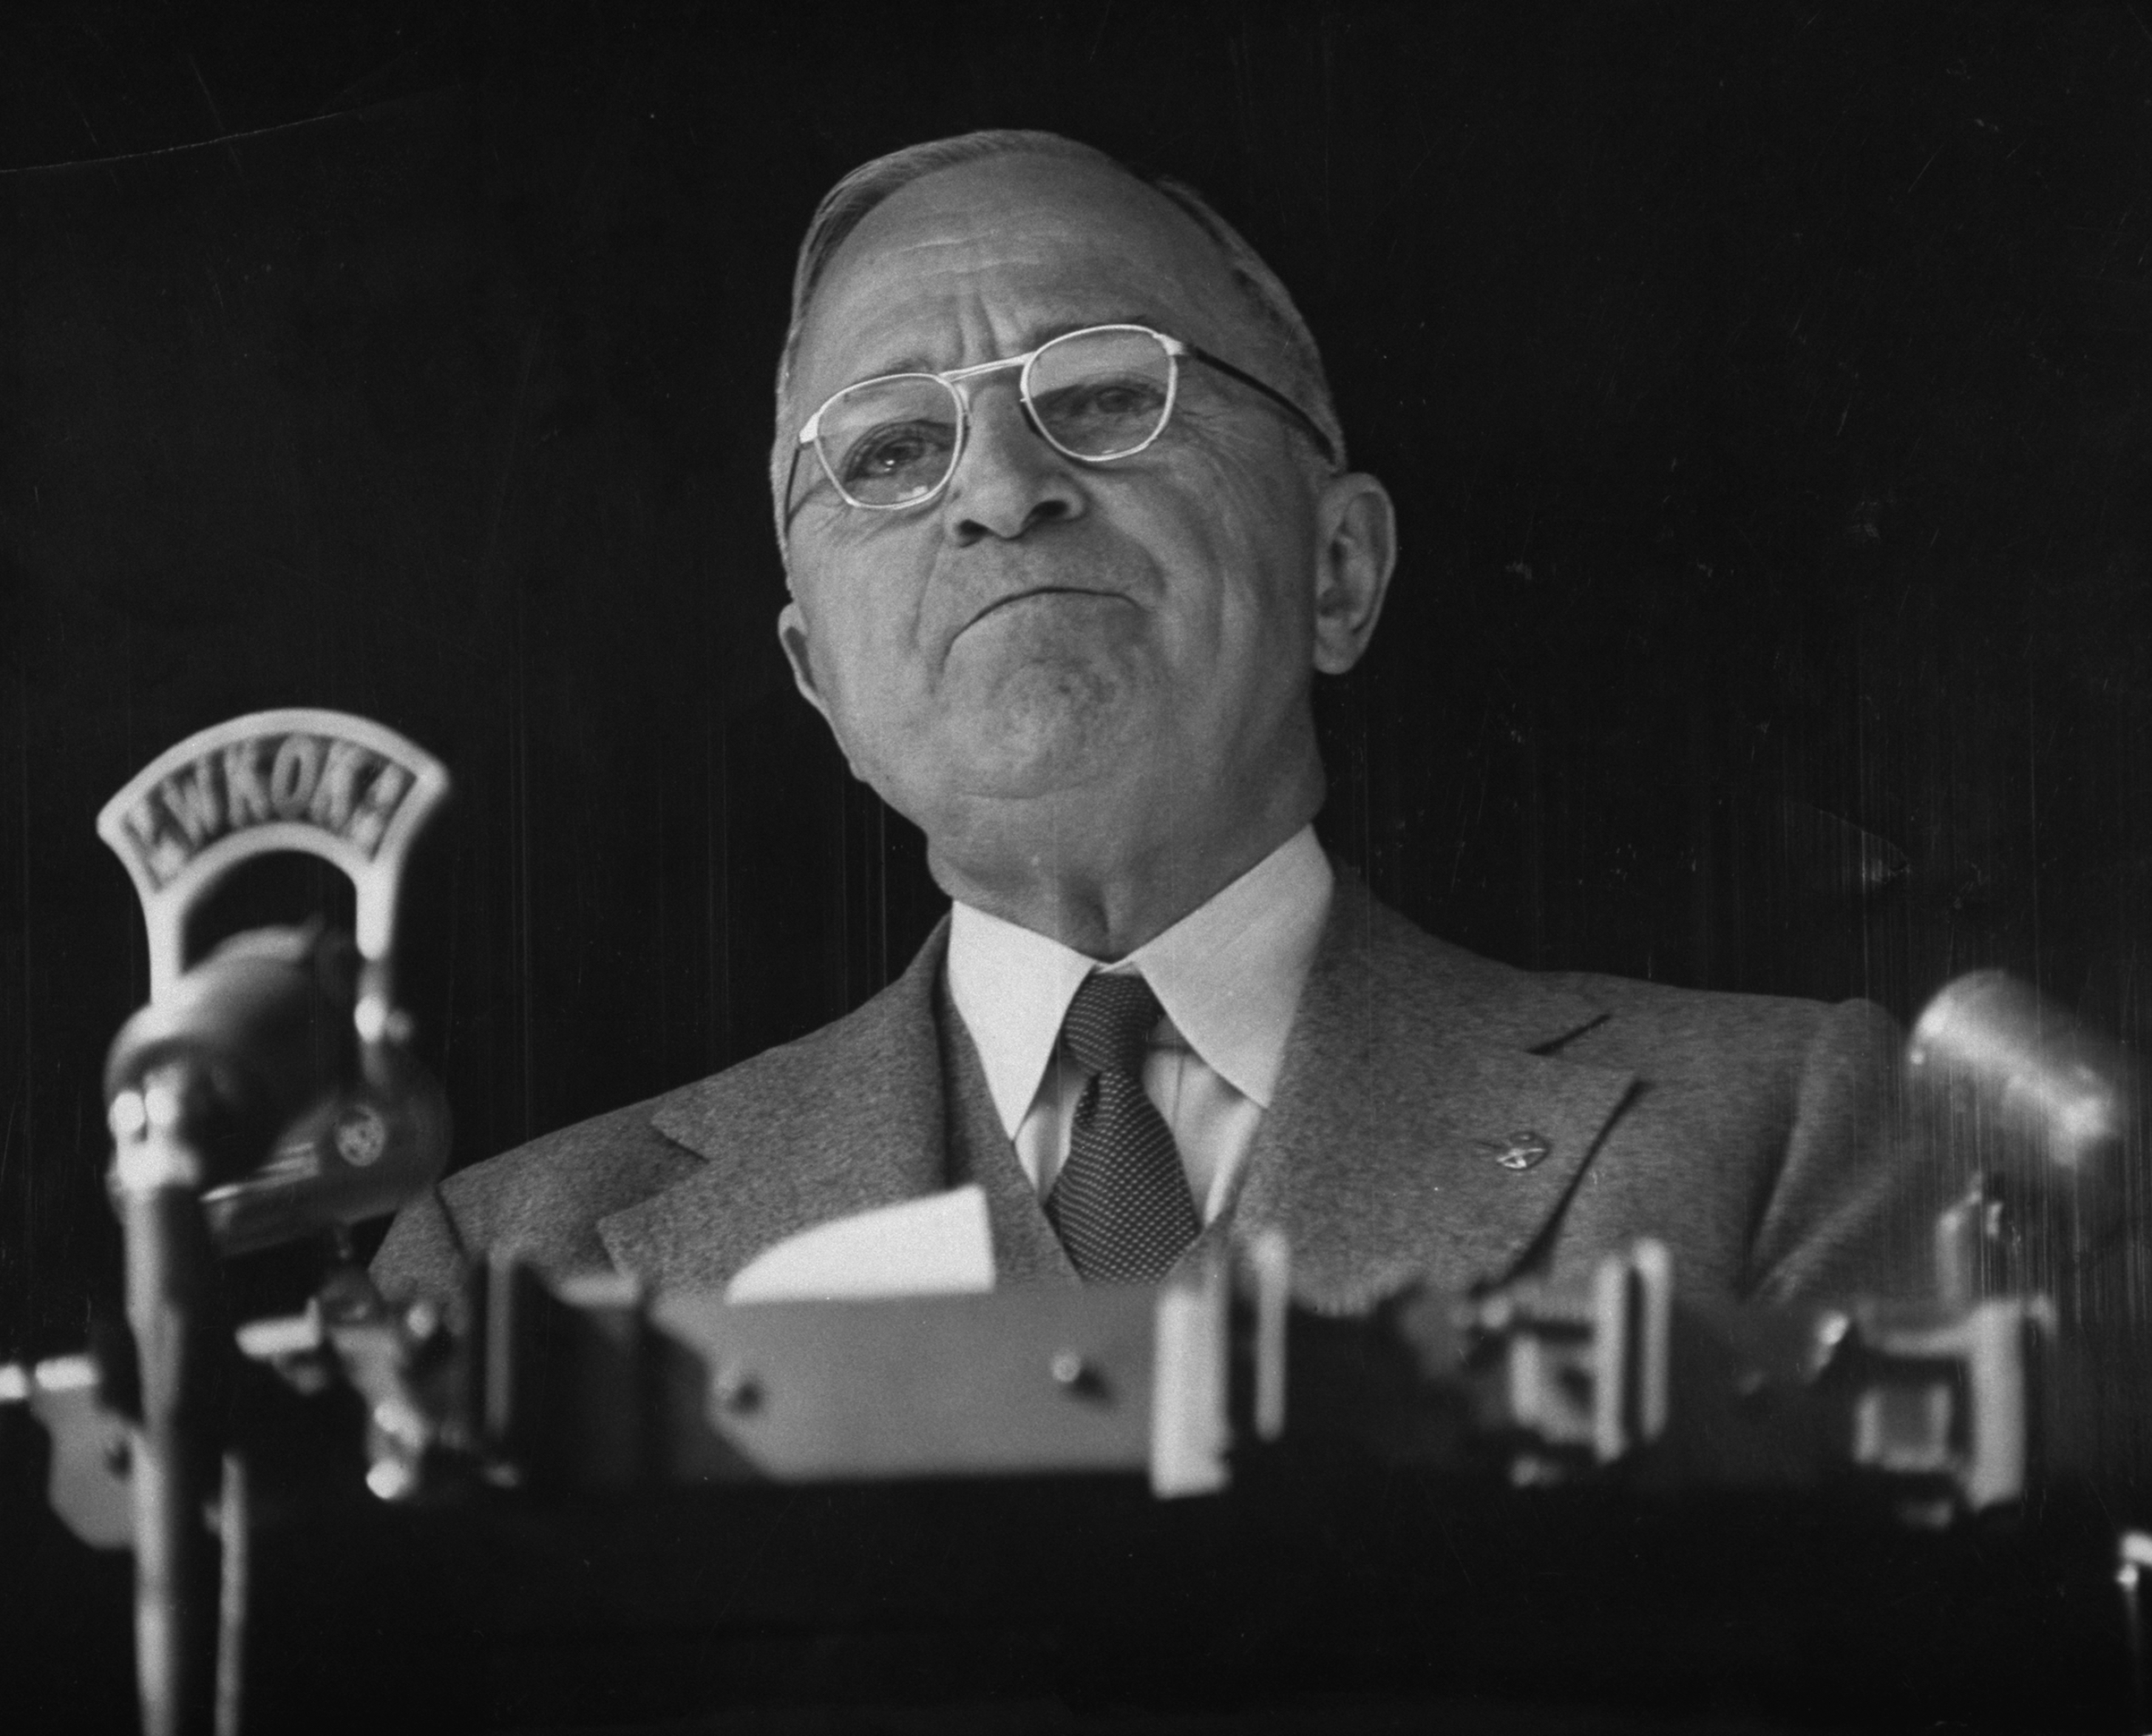 Harry S. Truman making a campaign speech in 1952